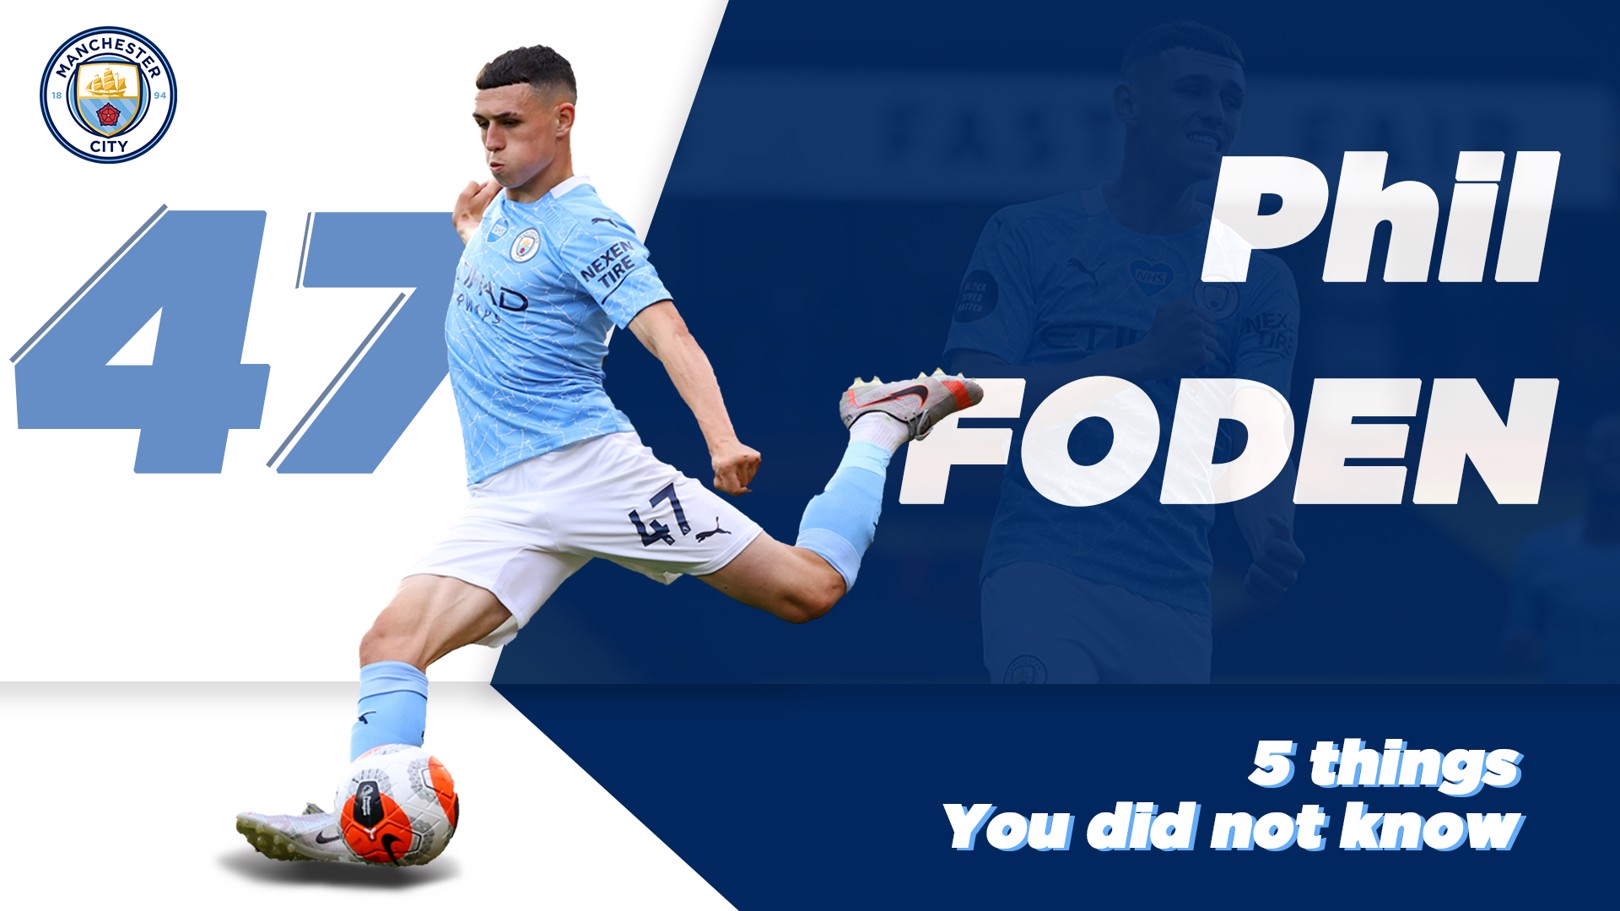 Phil foden, 5 things you did not know